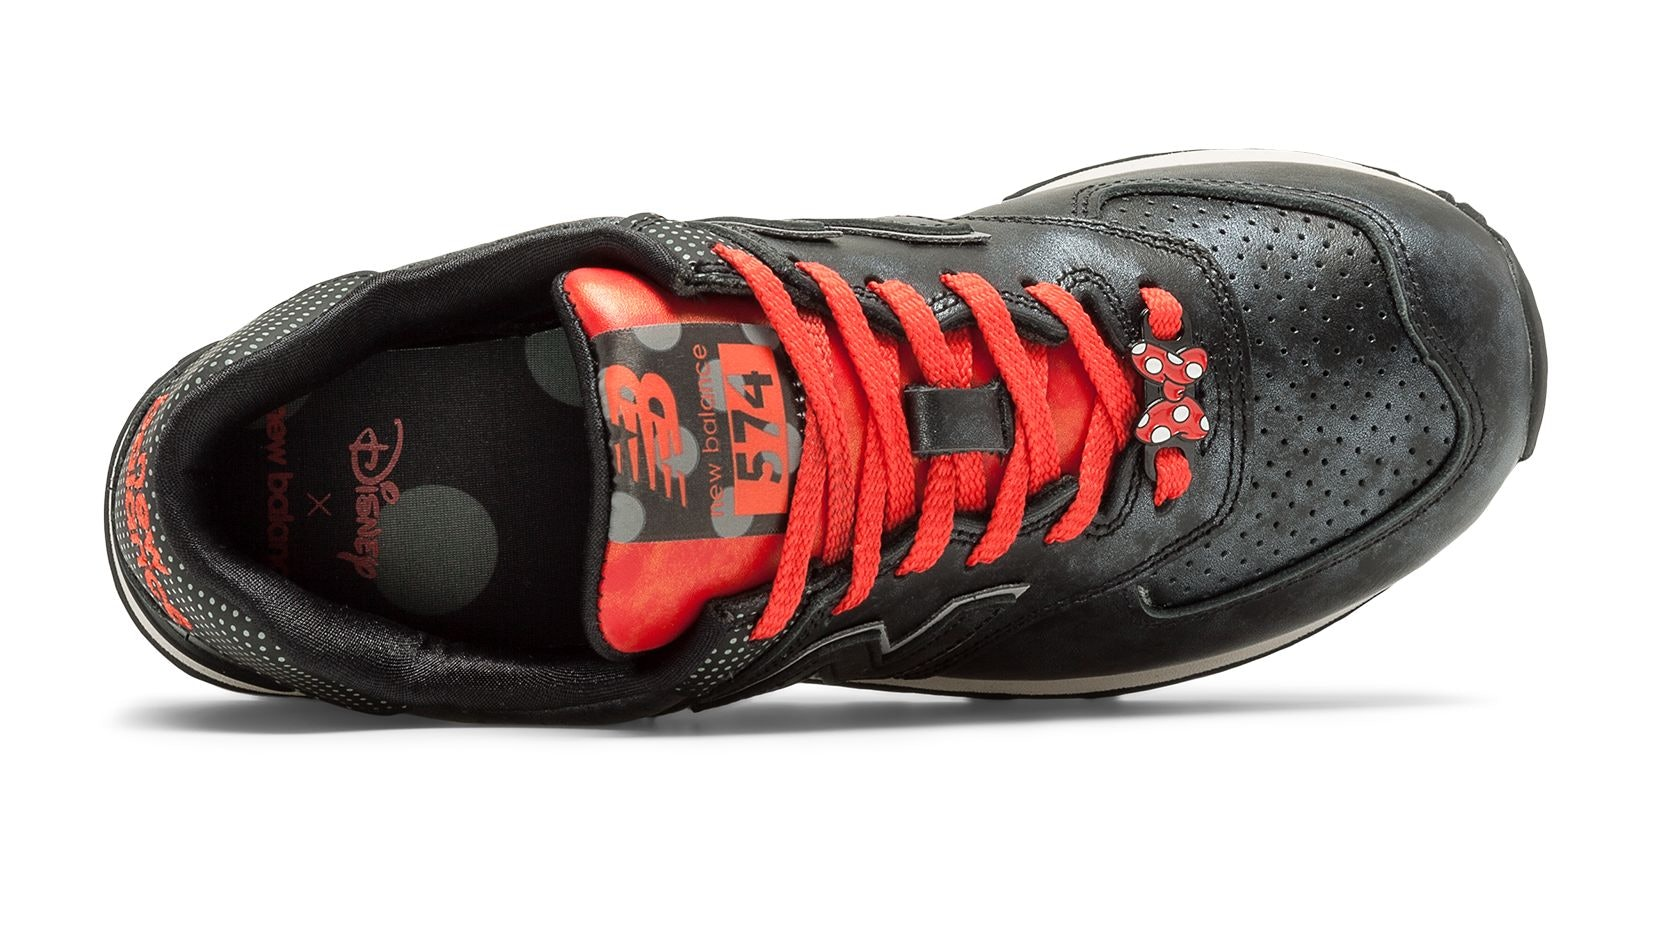 Where Can You Buy Minnie Mouse x New Balance Sneakers  The Understated Line  Is Polka Dot Perfection 32f0b3fe4